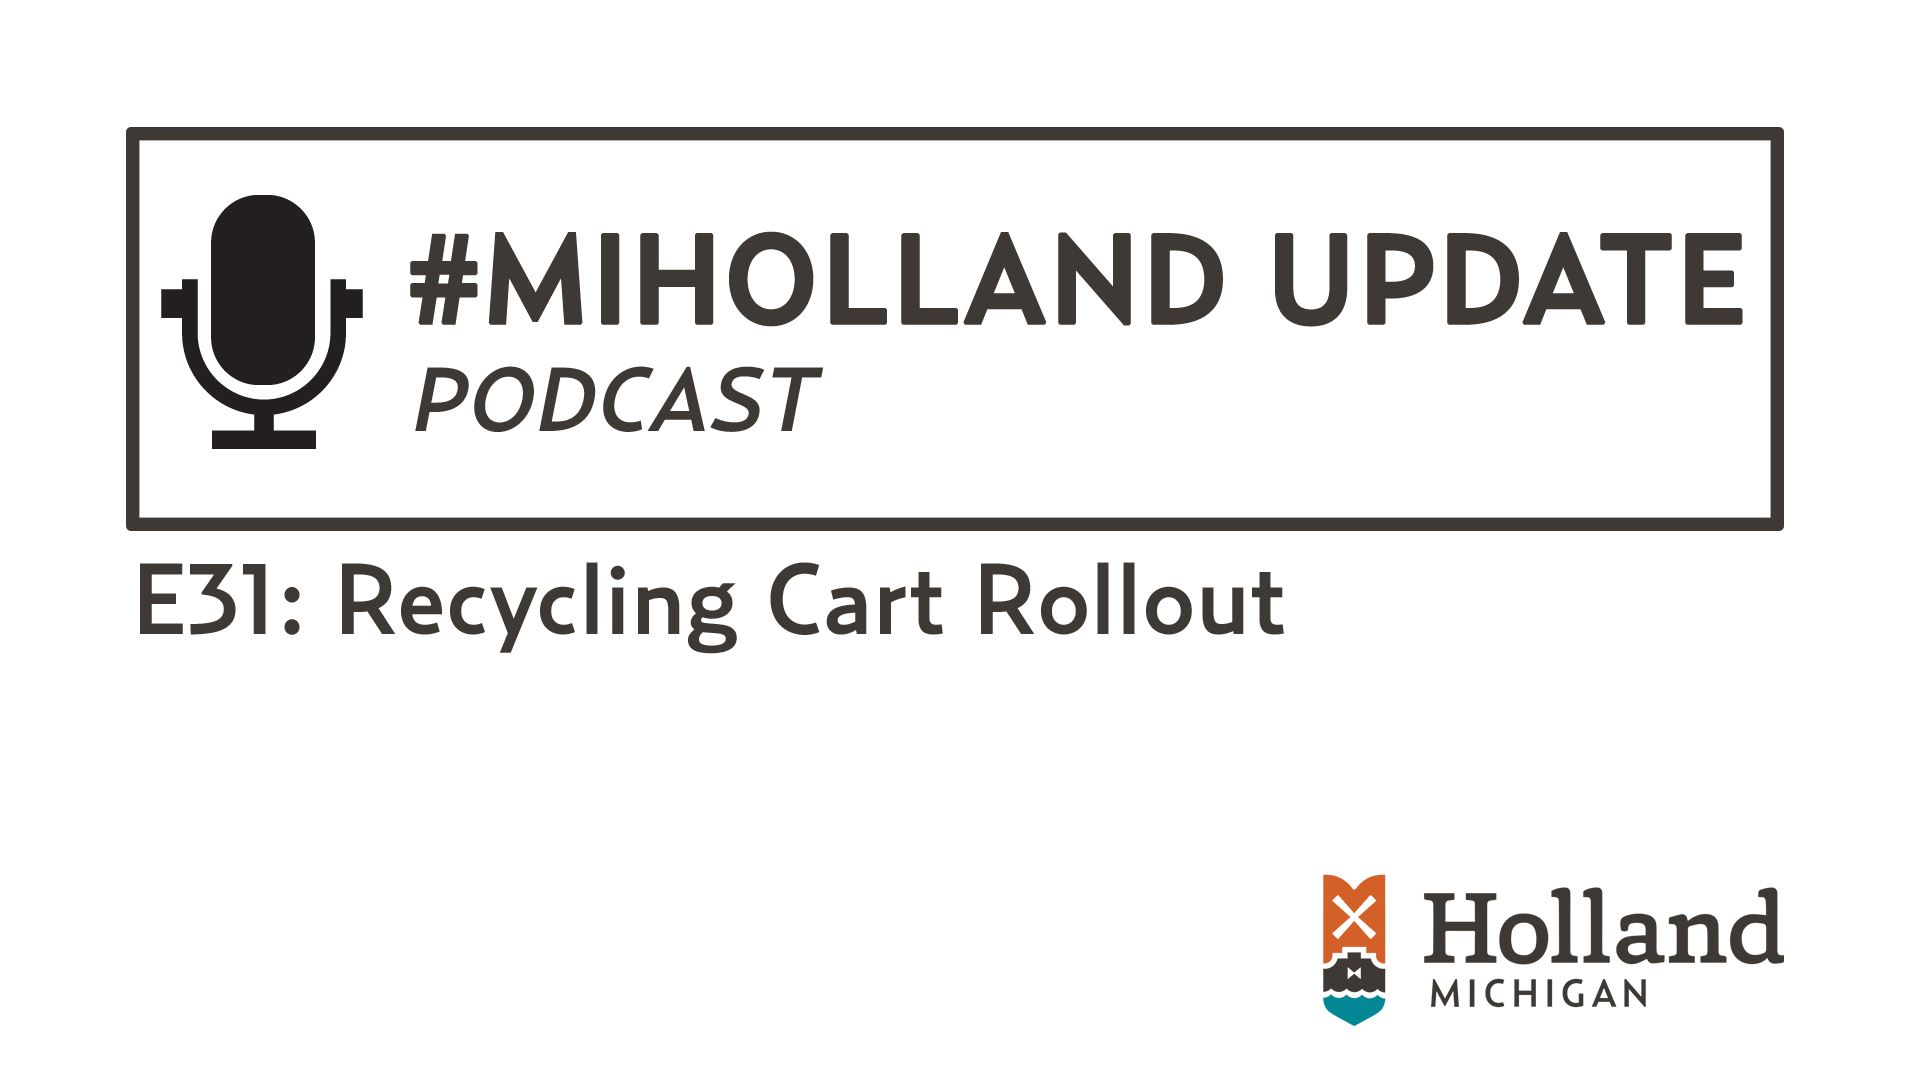 E31 - Recycling Cart Rollout